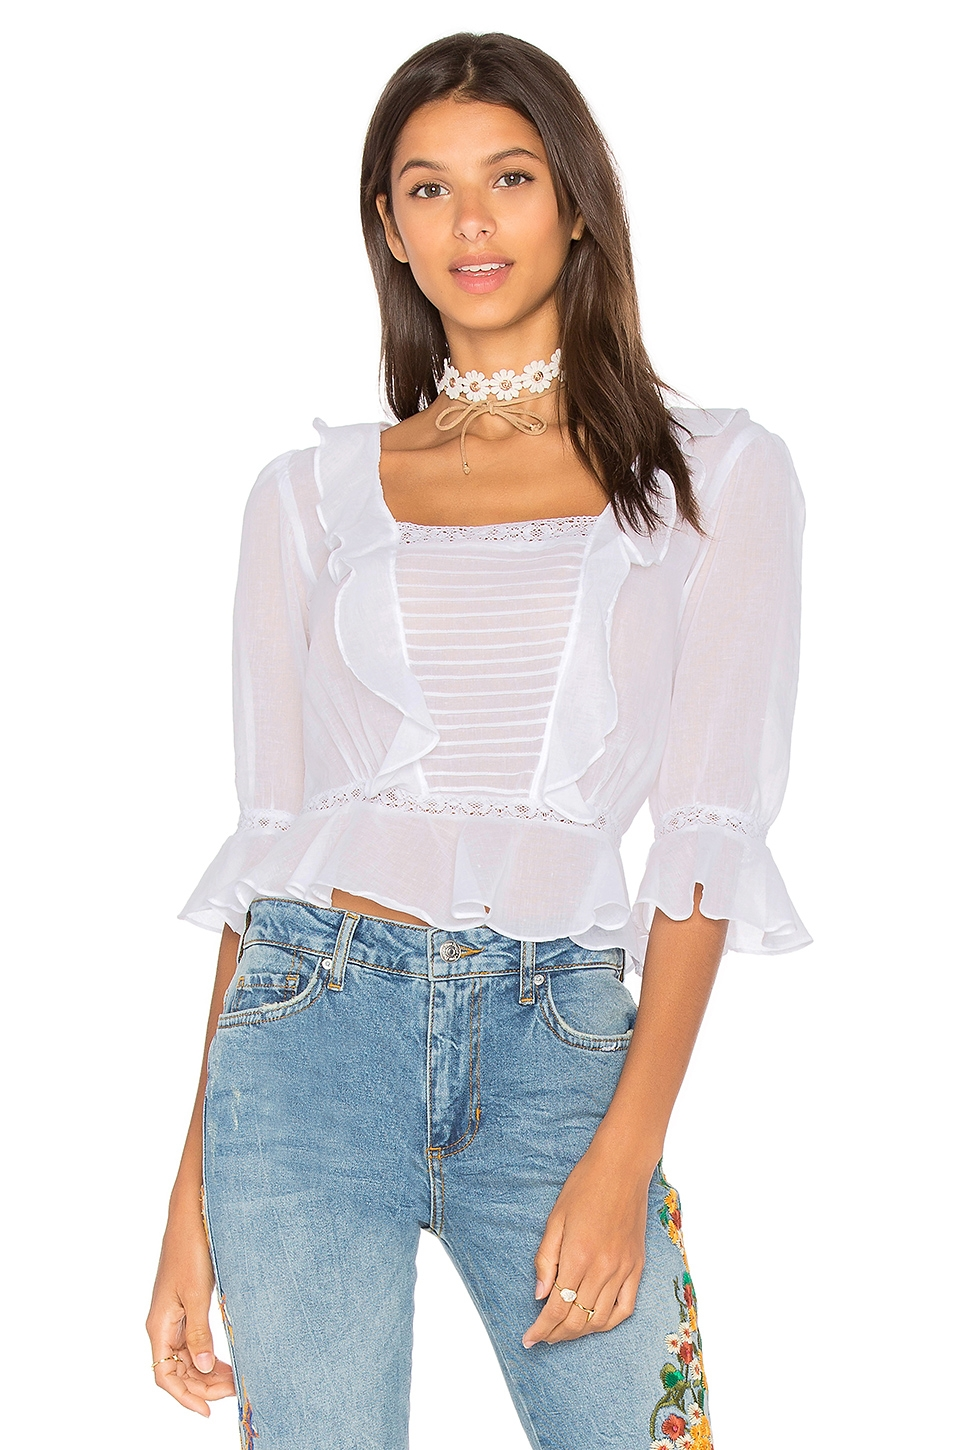 http-::www.revolve.com:for-love-lemons-gauze-top:dp:FORL-WS196:?d=Womens&page=1&lc=67&itrownum=23&itcurrpage=1&itview=01.jpg